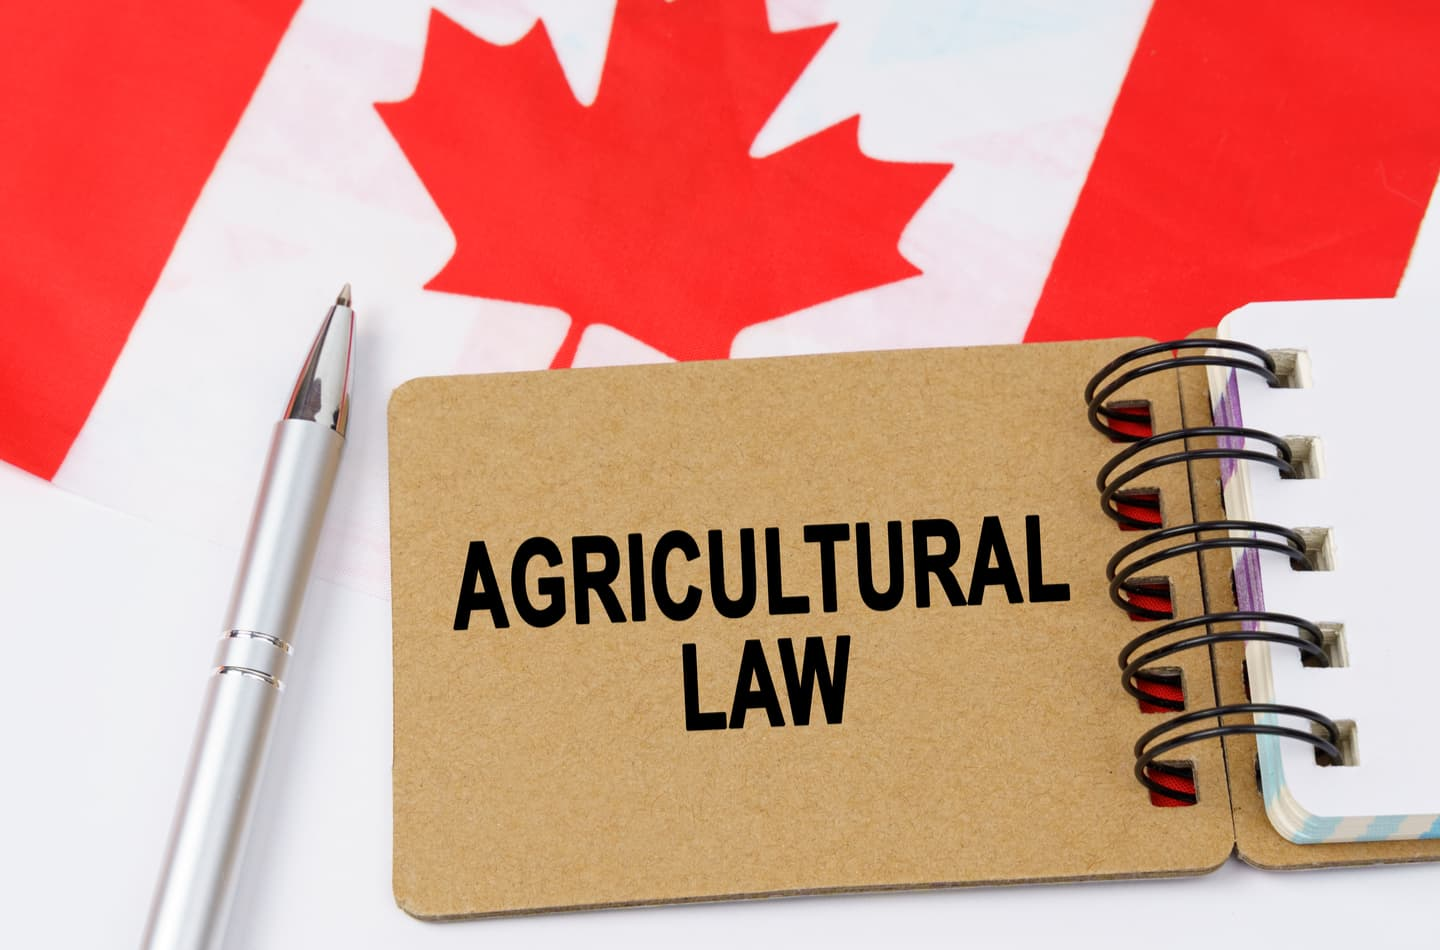 Agricultural Law on Canadian flag background